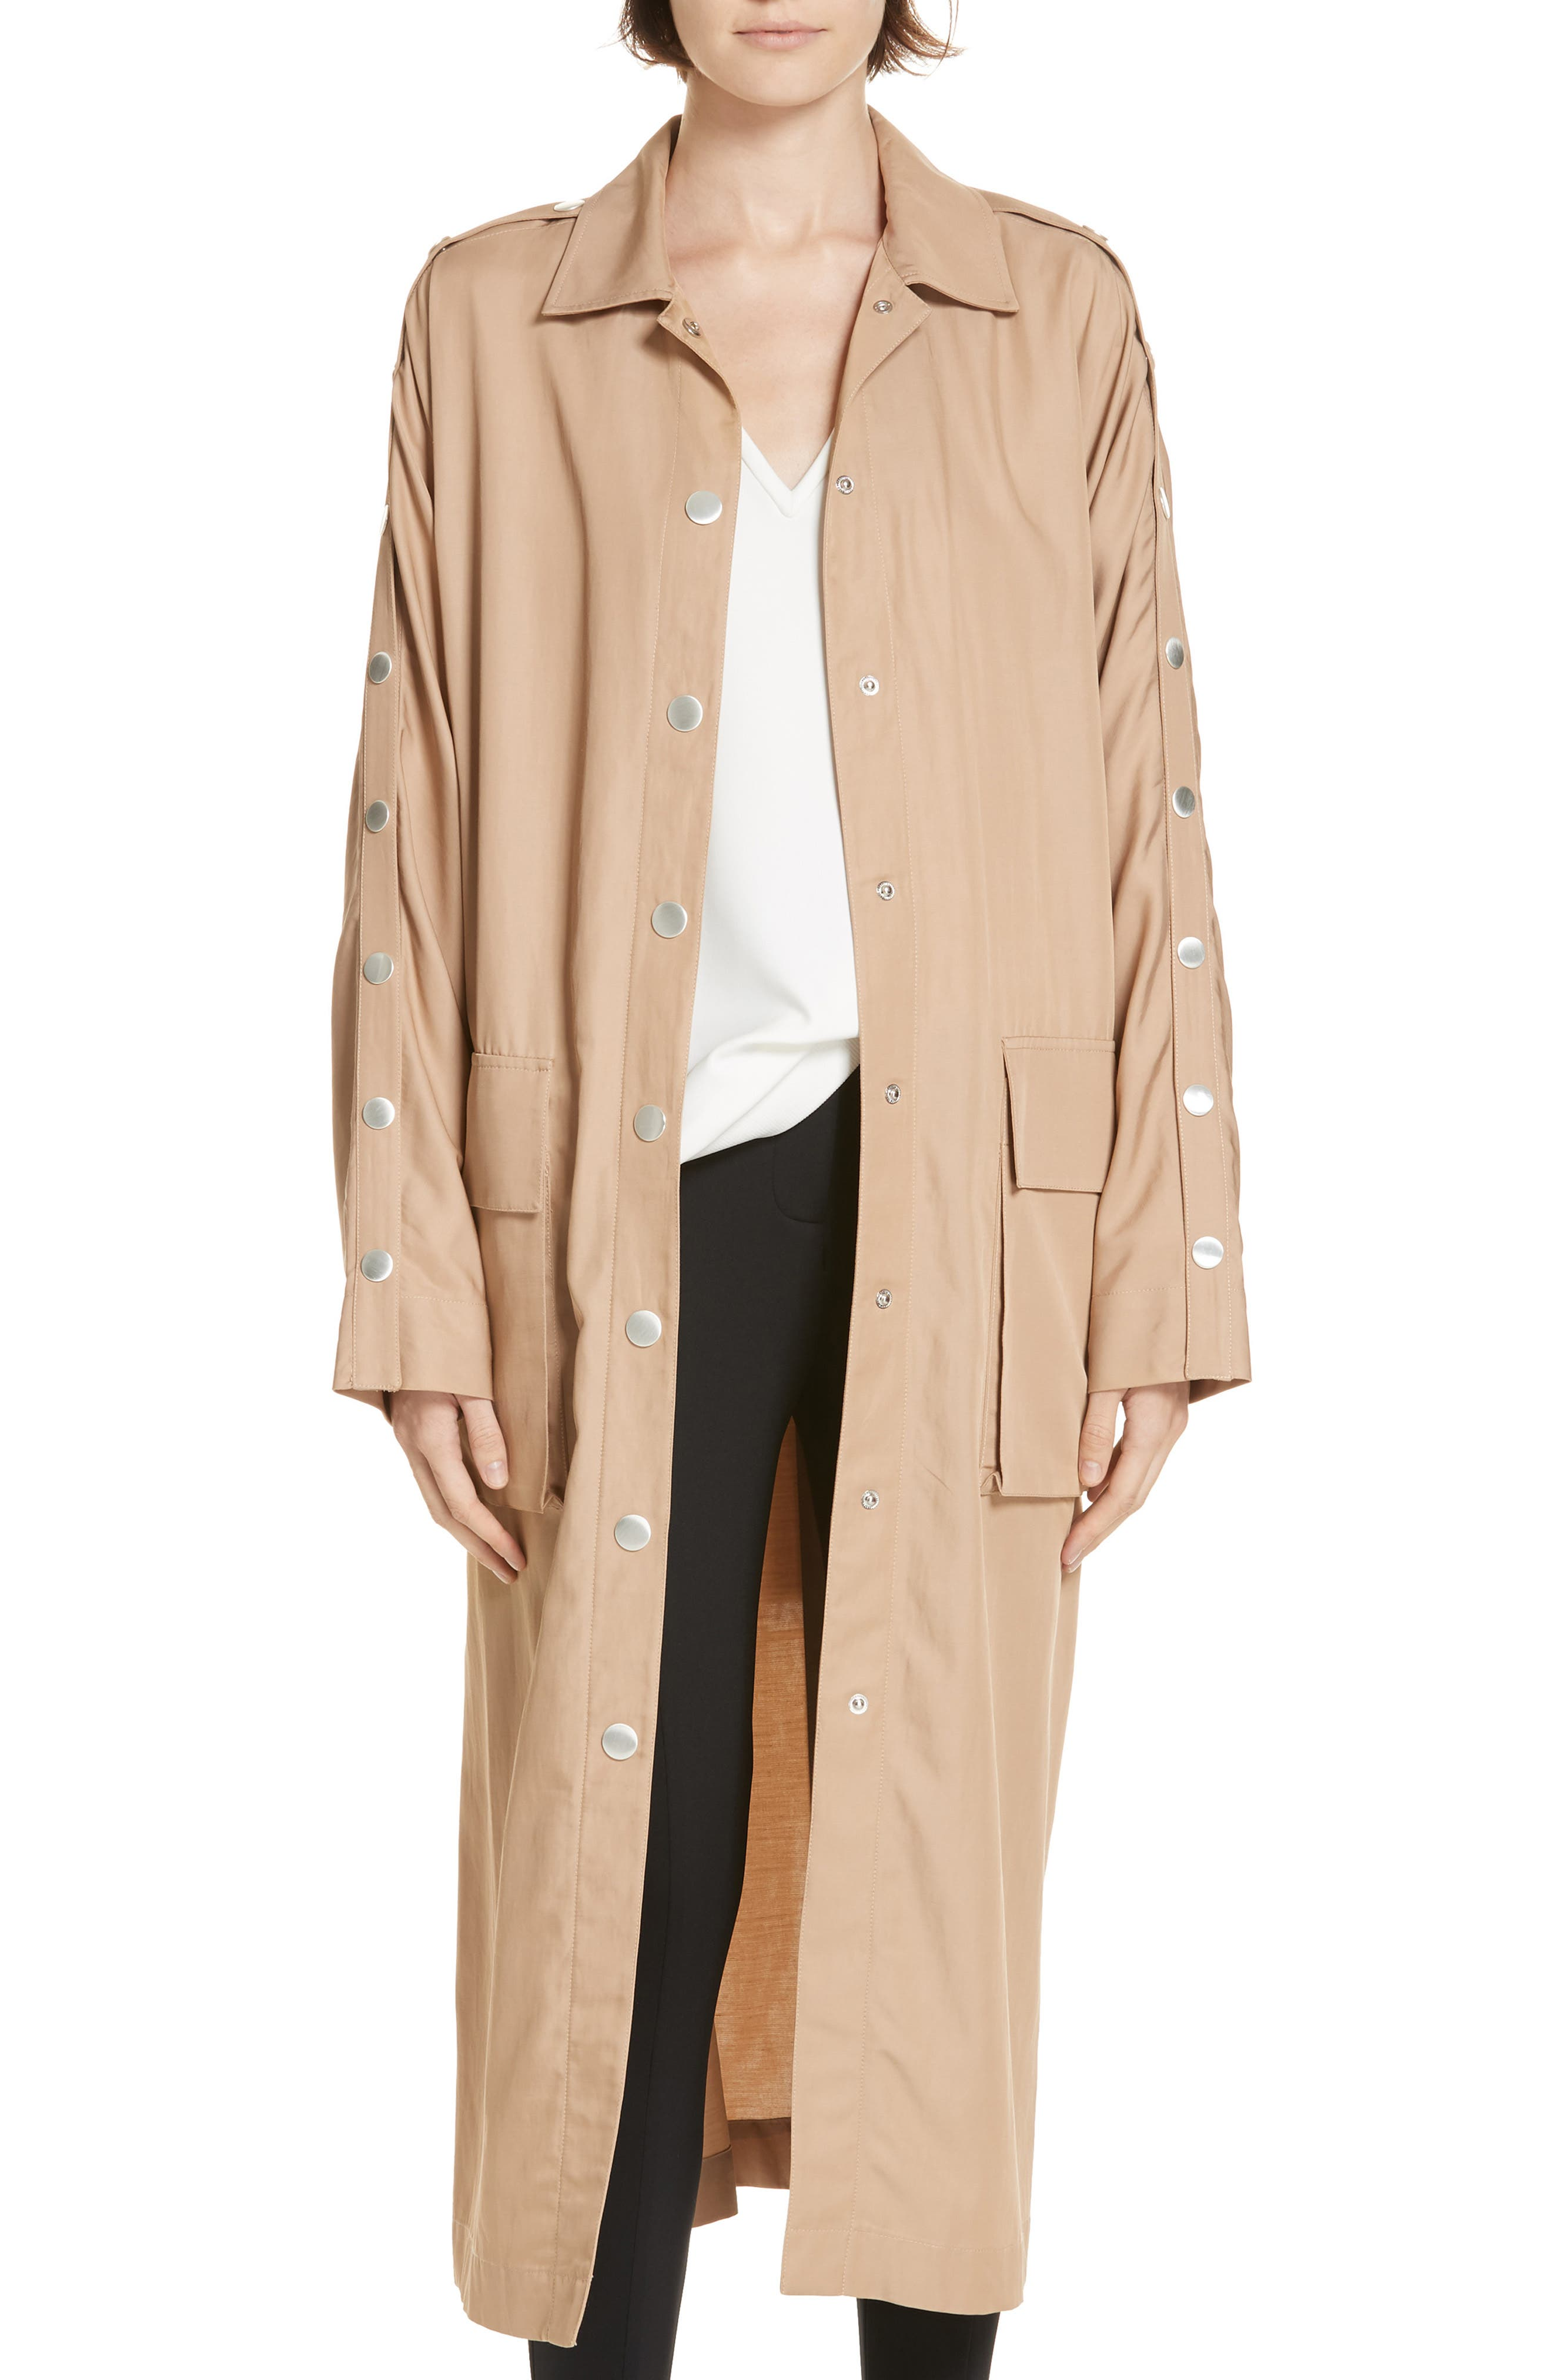 Snap Detail Trench Coat,                             Alternate thumbnail 8, color,                             200